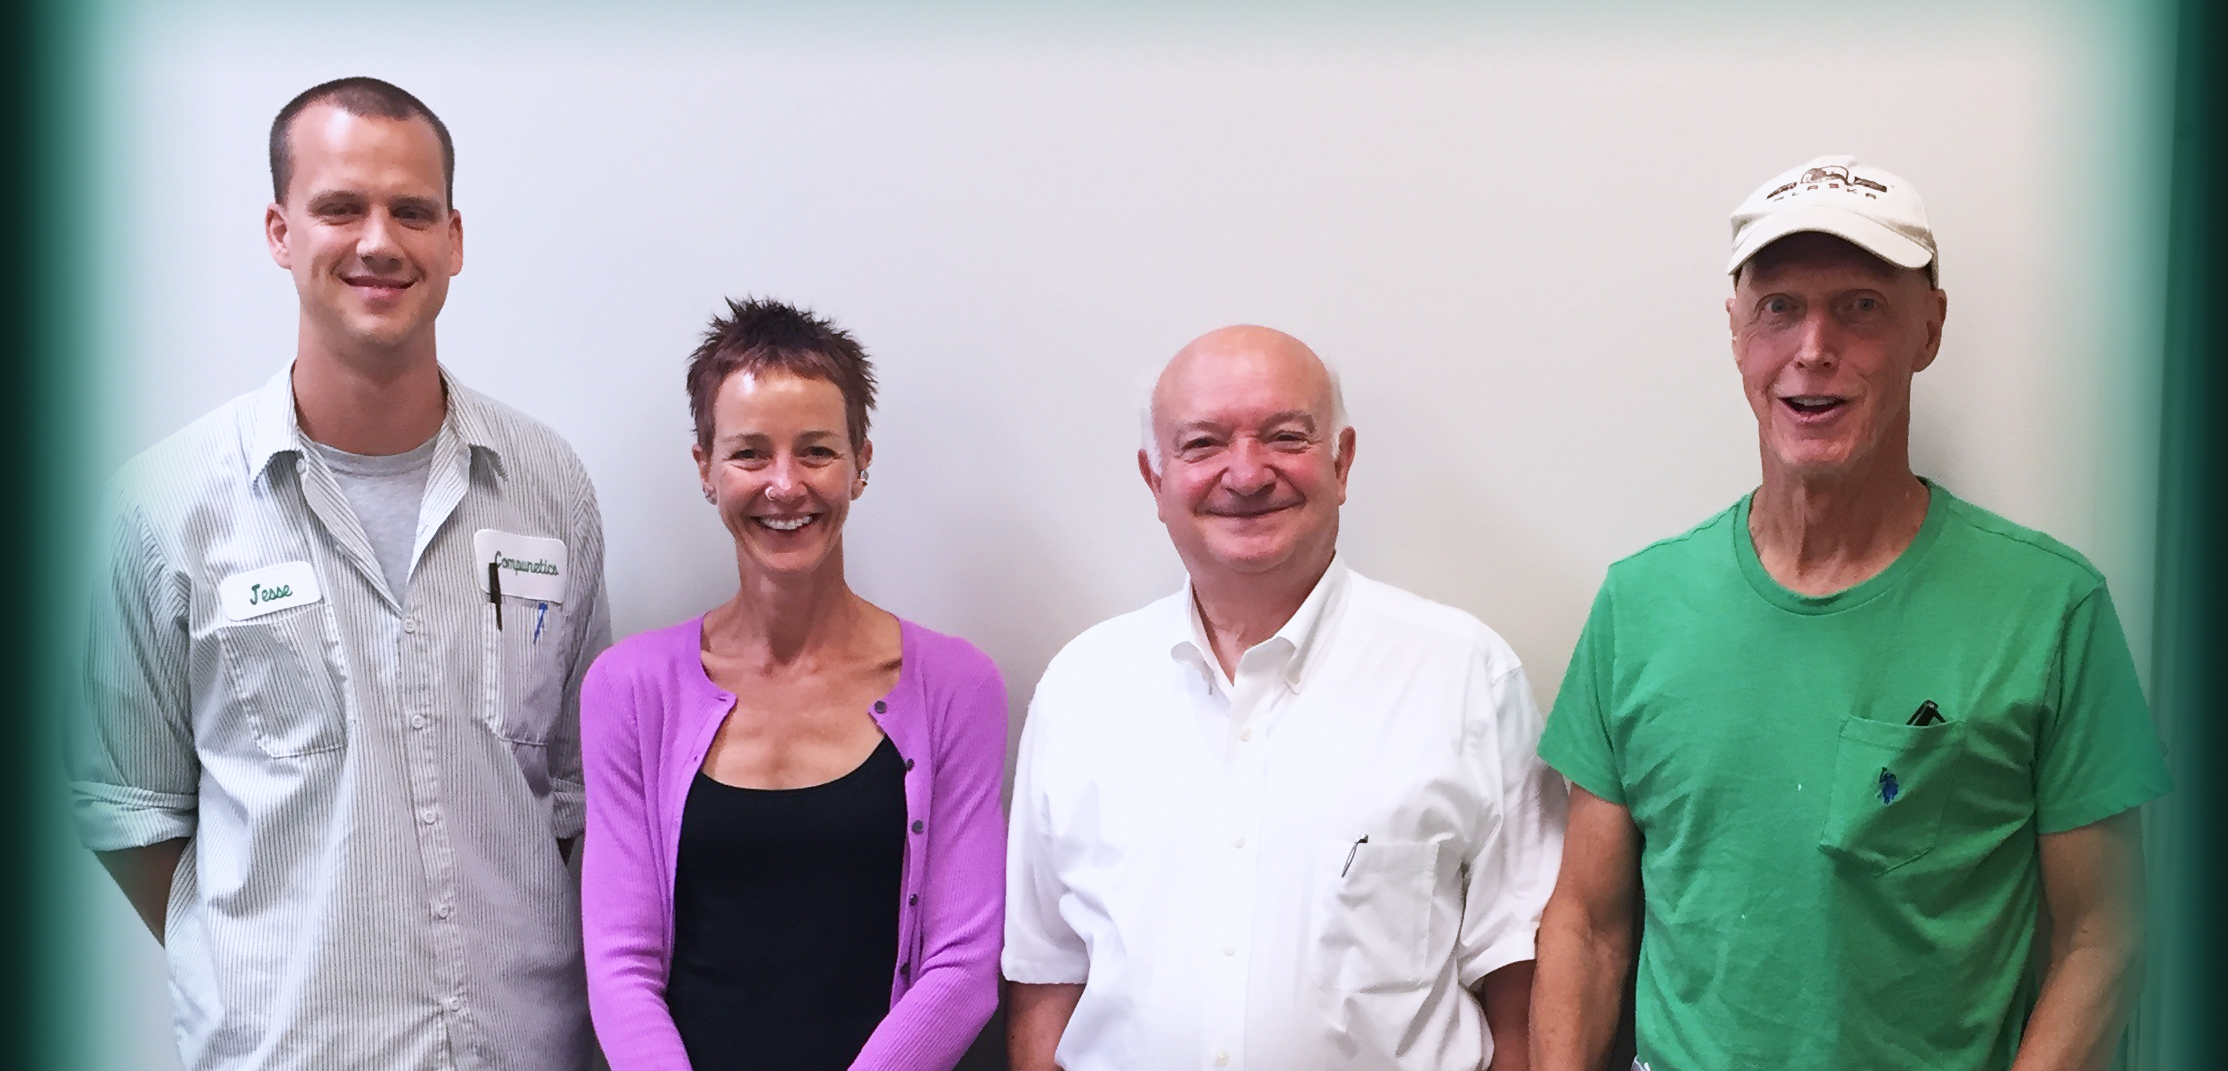 Dr. Joe Hill-Kittle (second from left) and the Compunetics Team